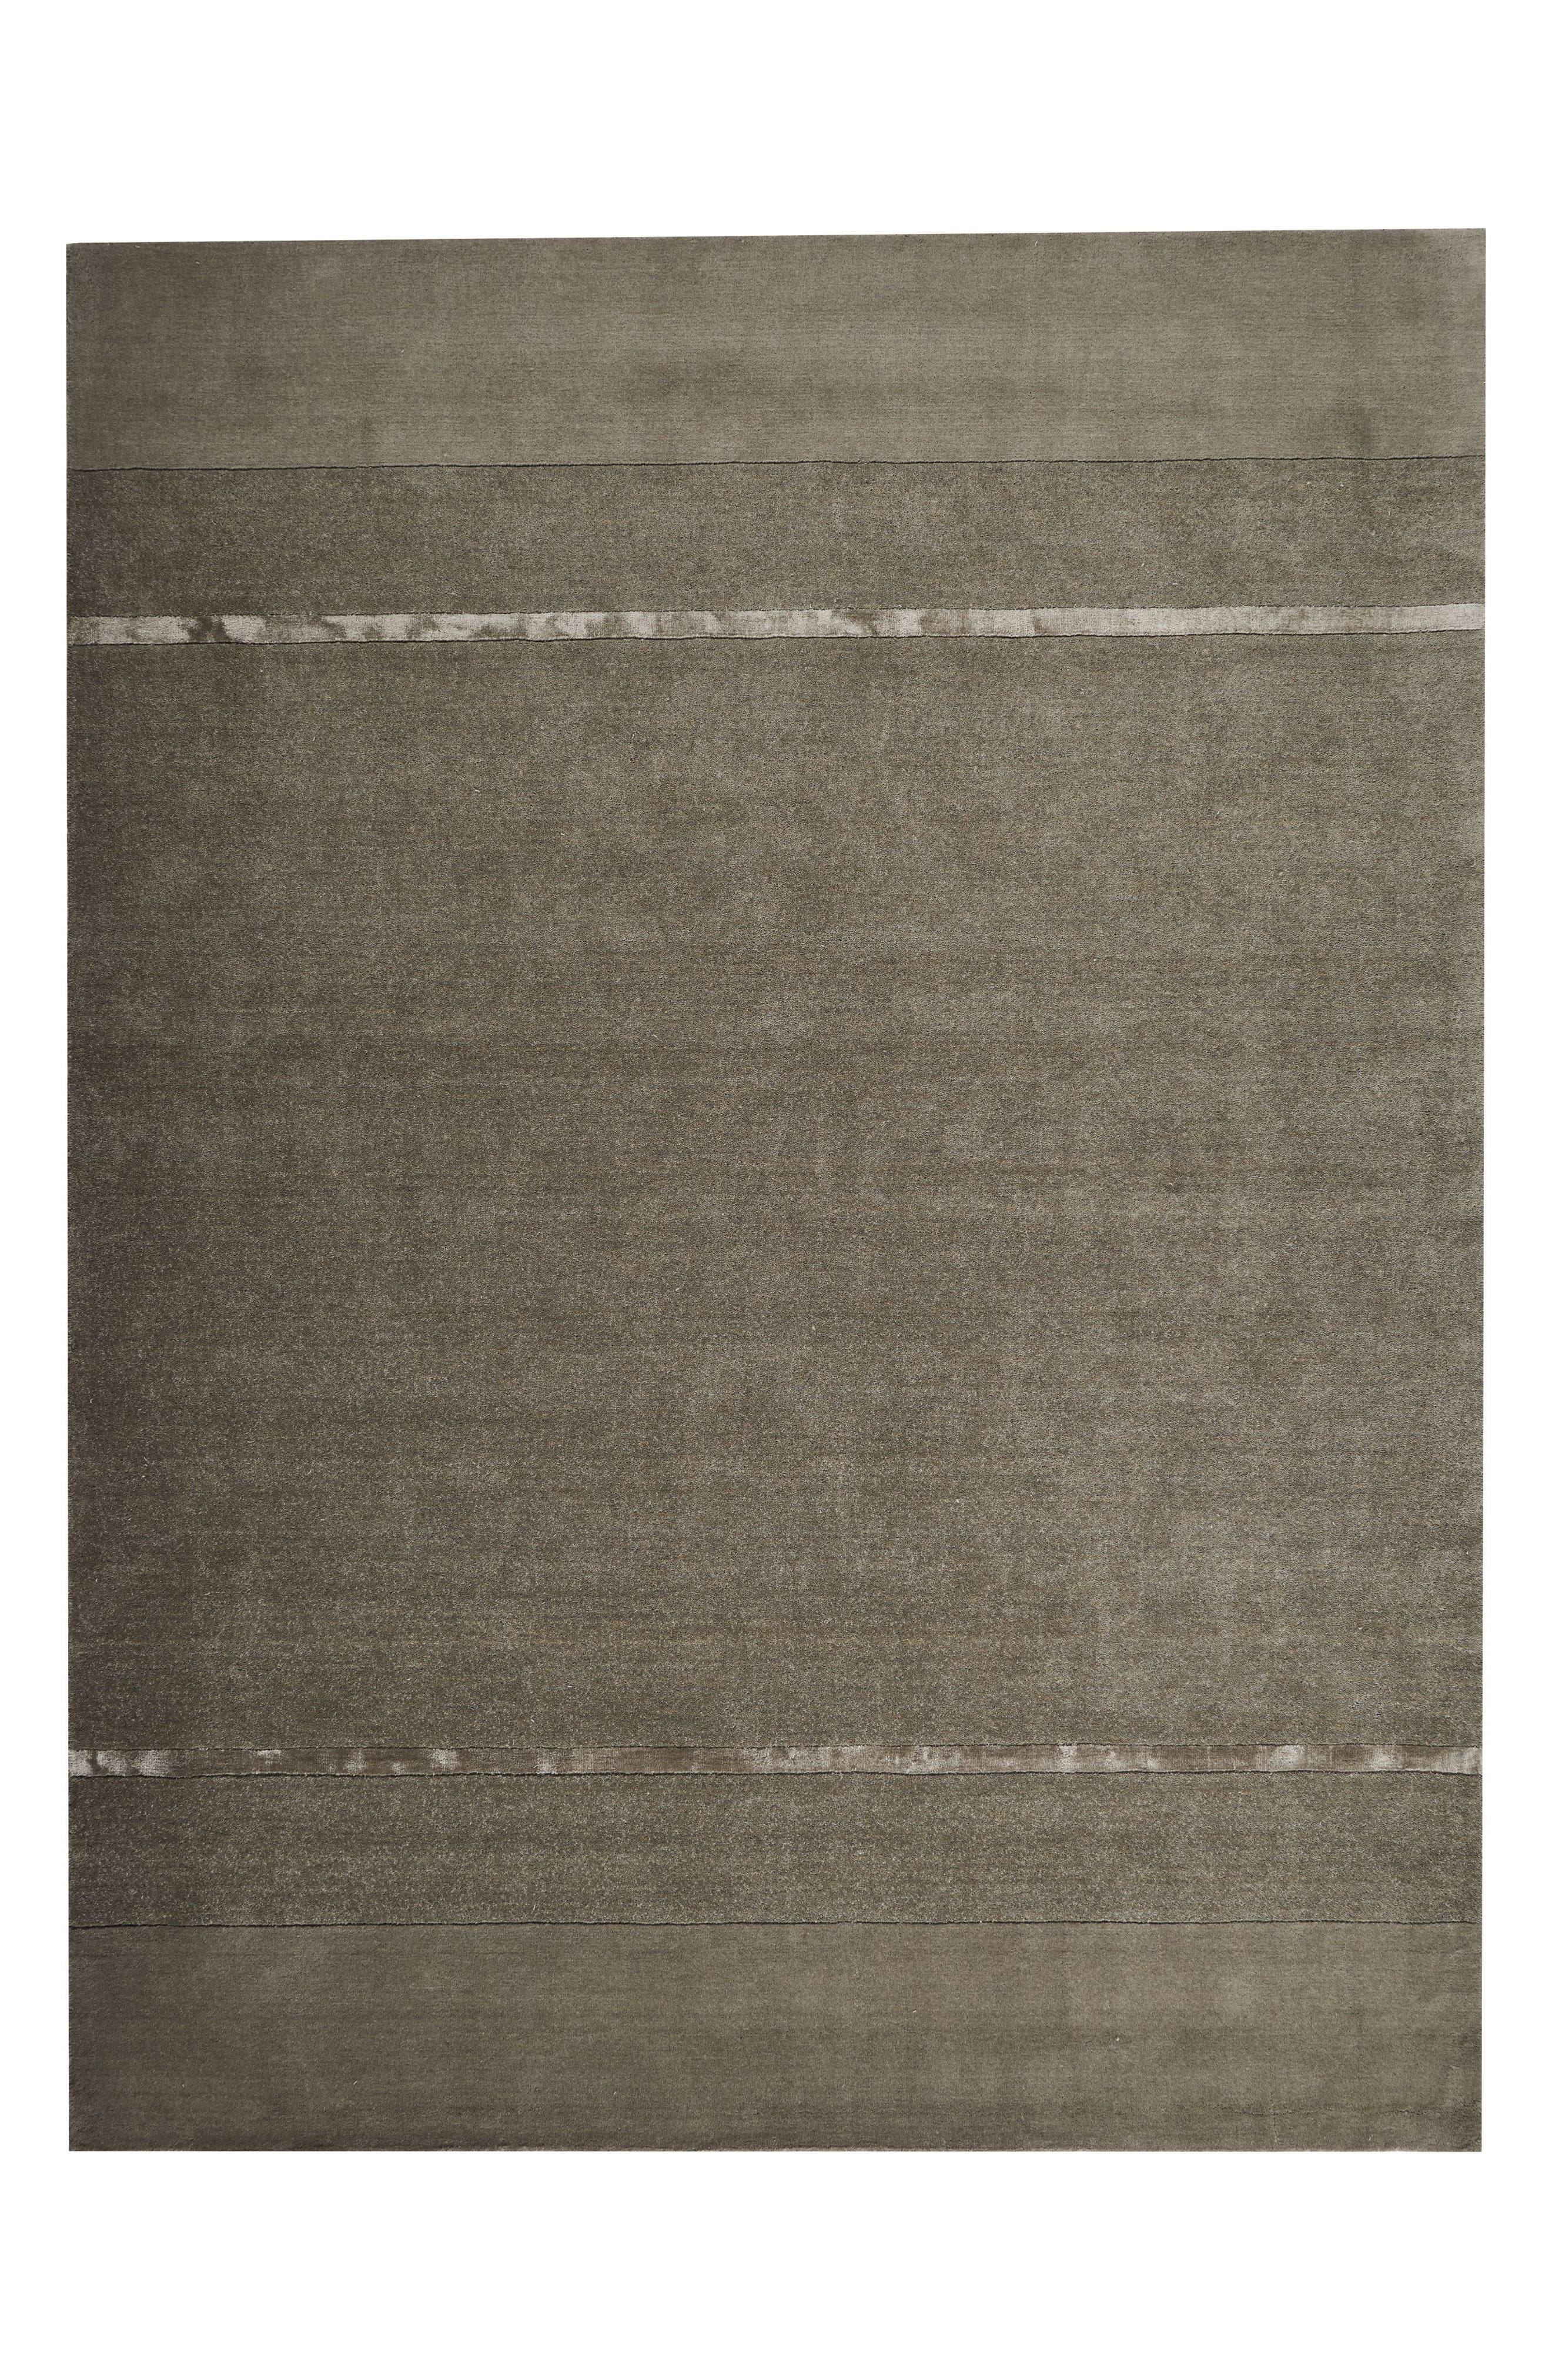 Vale Handwoven Area Rug,                             Main thumbnail 1, color,                             020